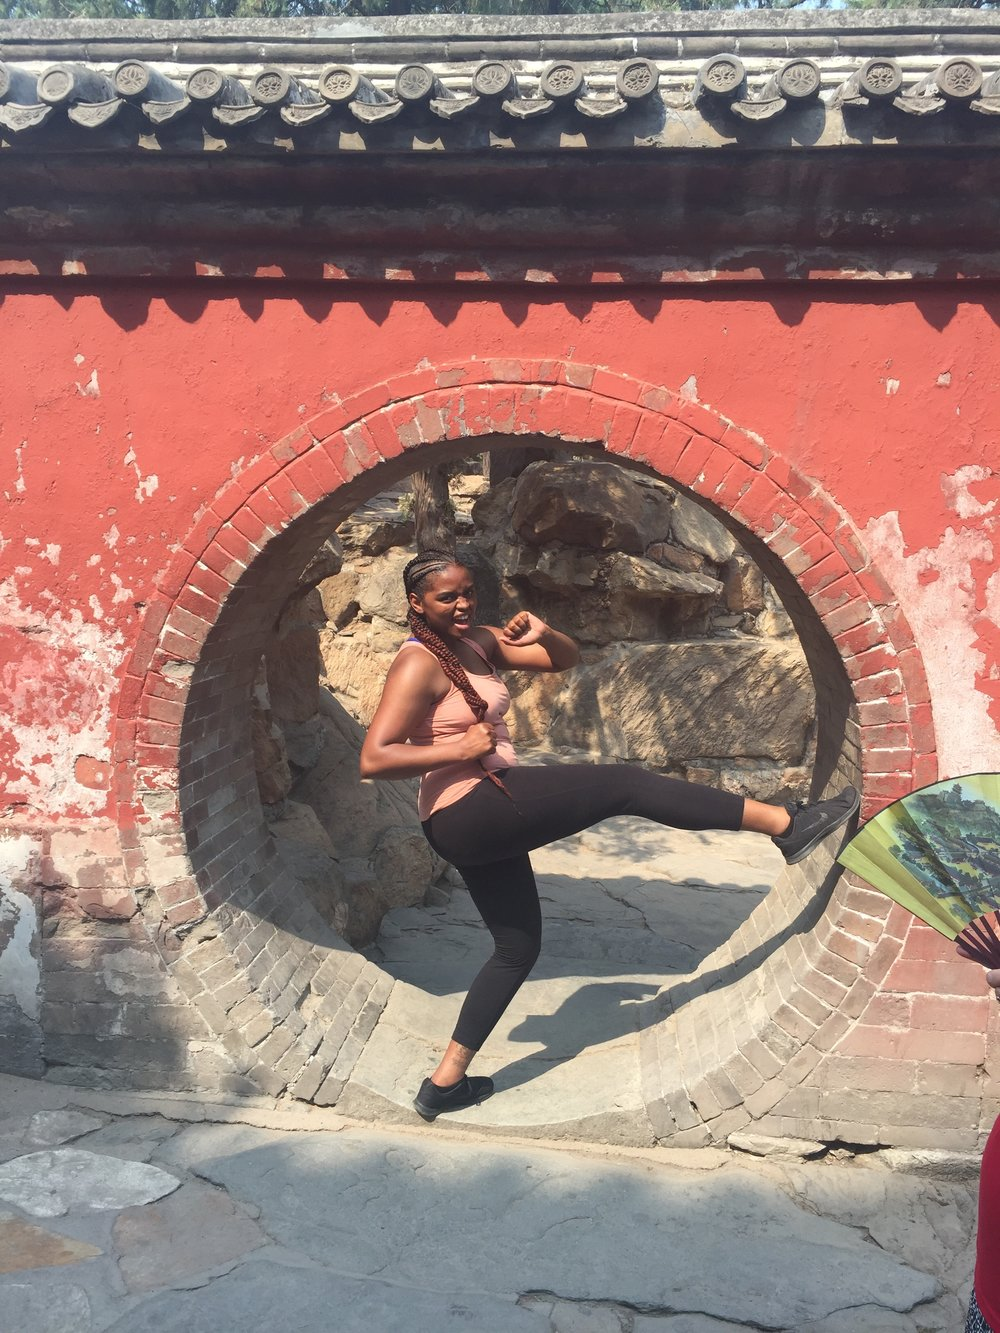 Shavonne ( @vonne_kaye ) is an author and the blog curator for All Things Inspiration. She enjoys traveling, fitness, movies and the arts. Pictured here at the historic Summer Palace in Beijing, China (May 19, 2017).